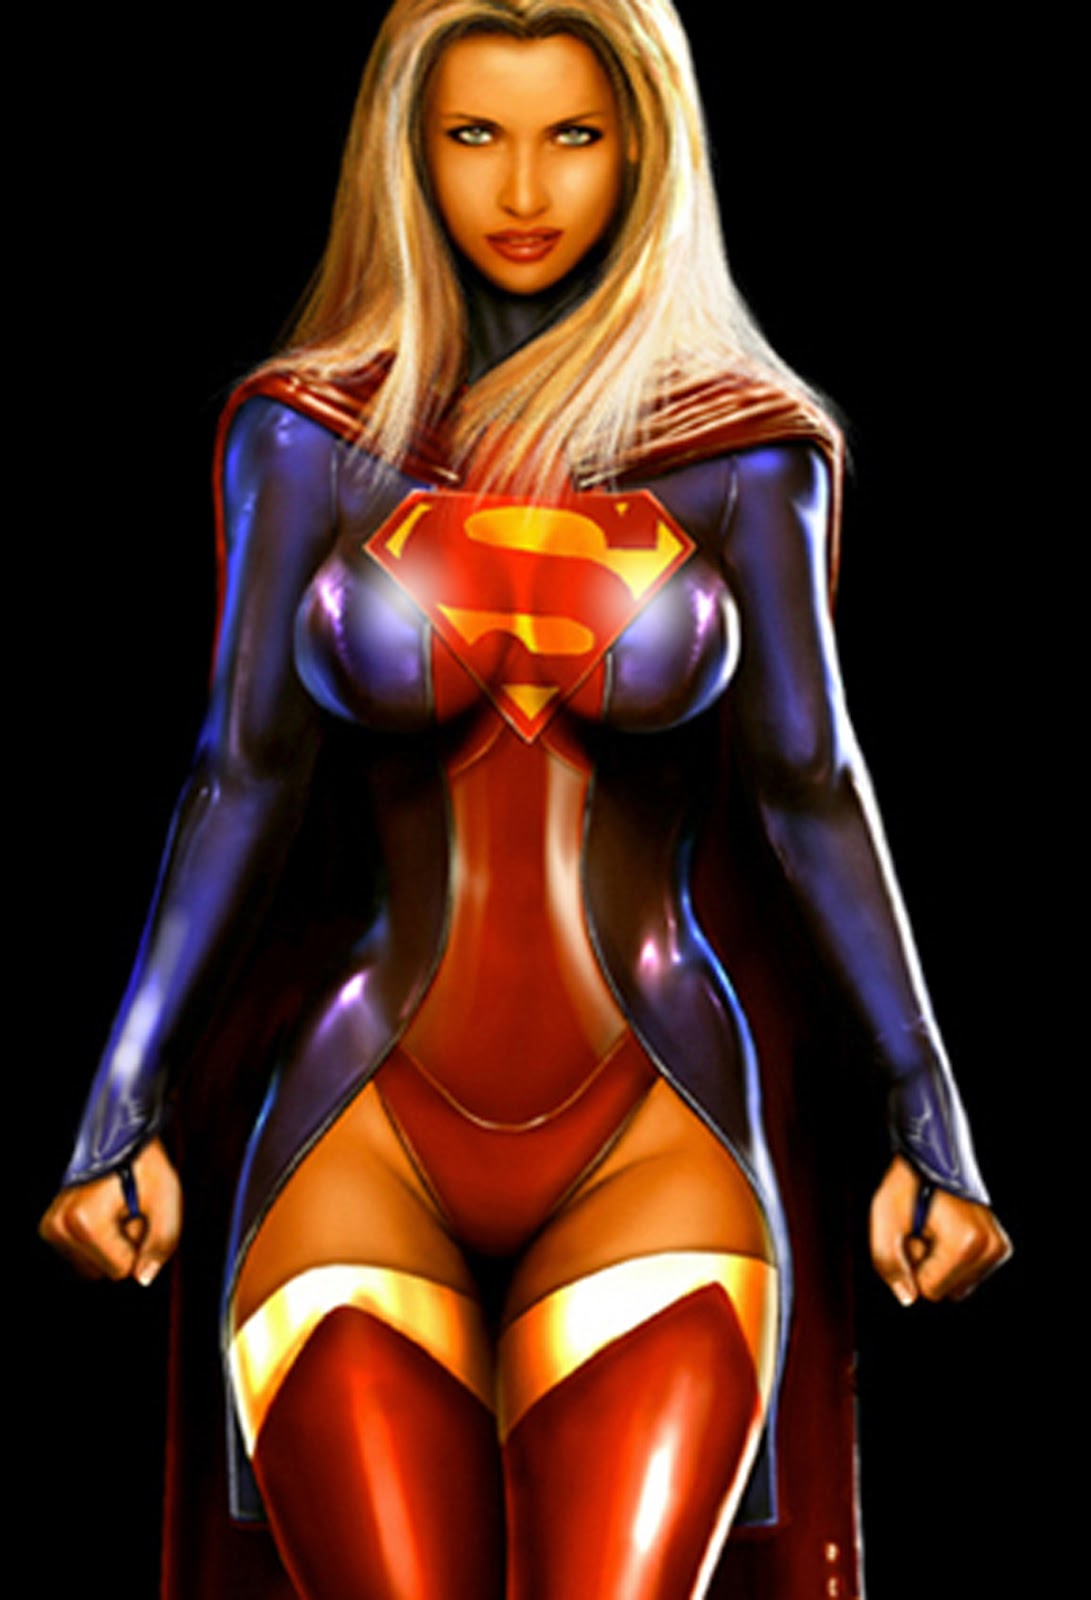 hot naked girl superheroes with big boobs